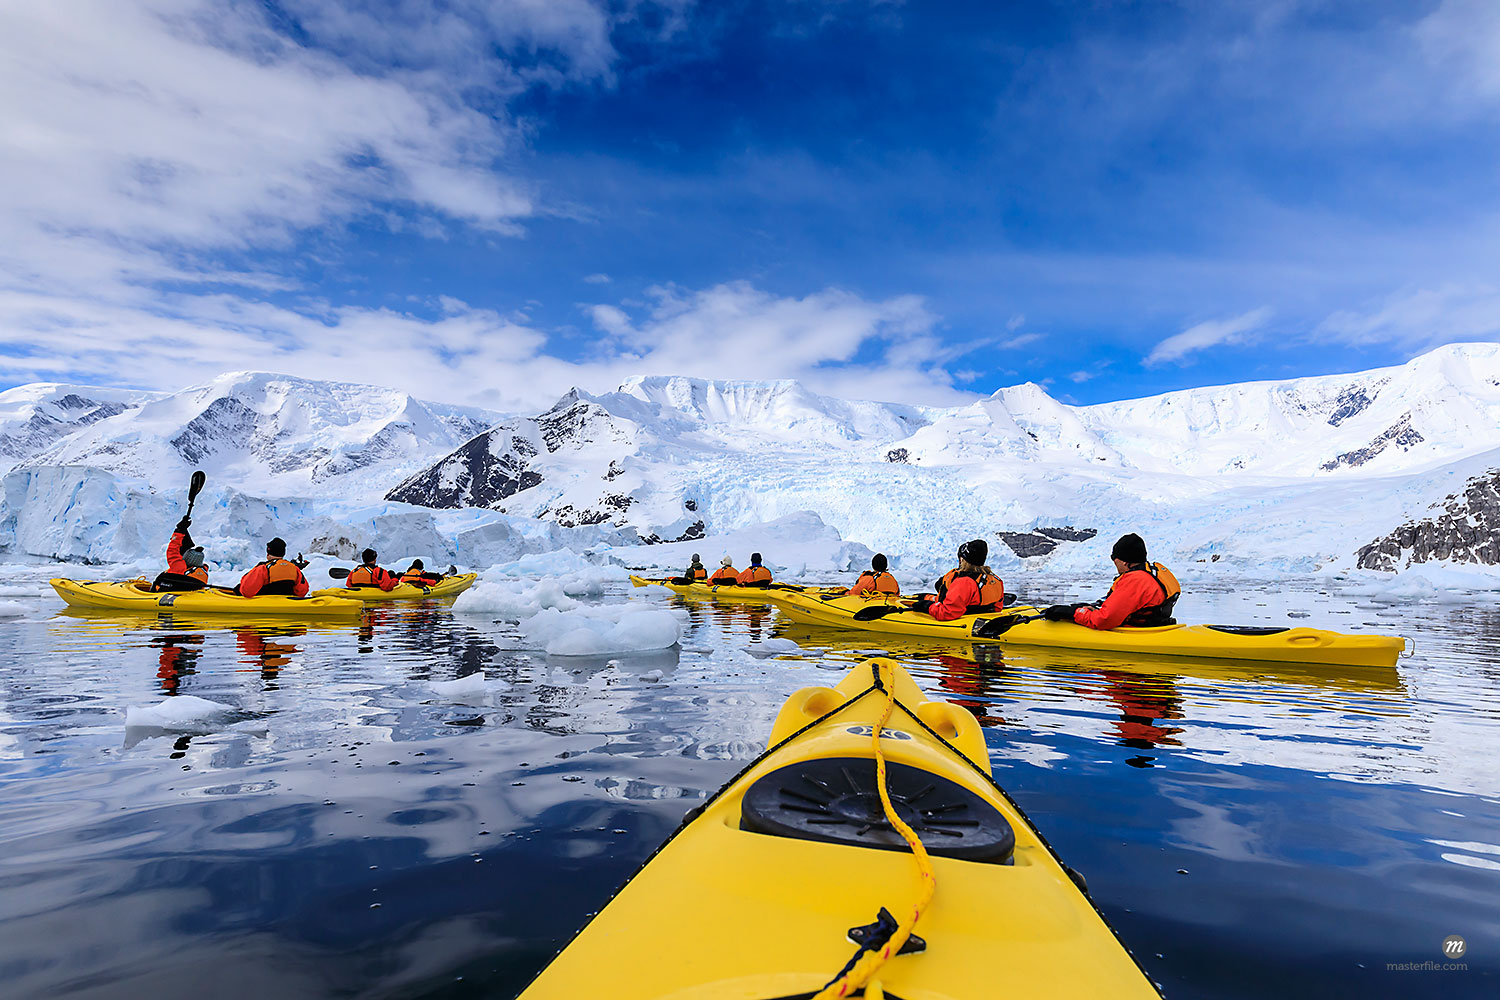 Kayaking amongst spectacular icebergs, mountains and glaciers, sunny Neko Harbour, Anvord Bay, Antarctic Peninsula, Antarctica, Polar Regions  © robertharding / Masterfile